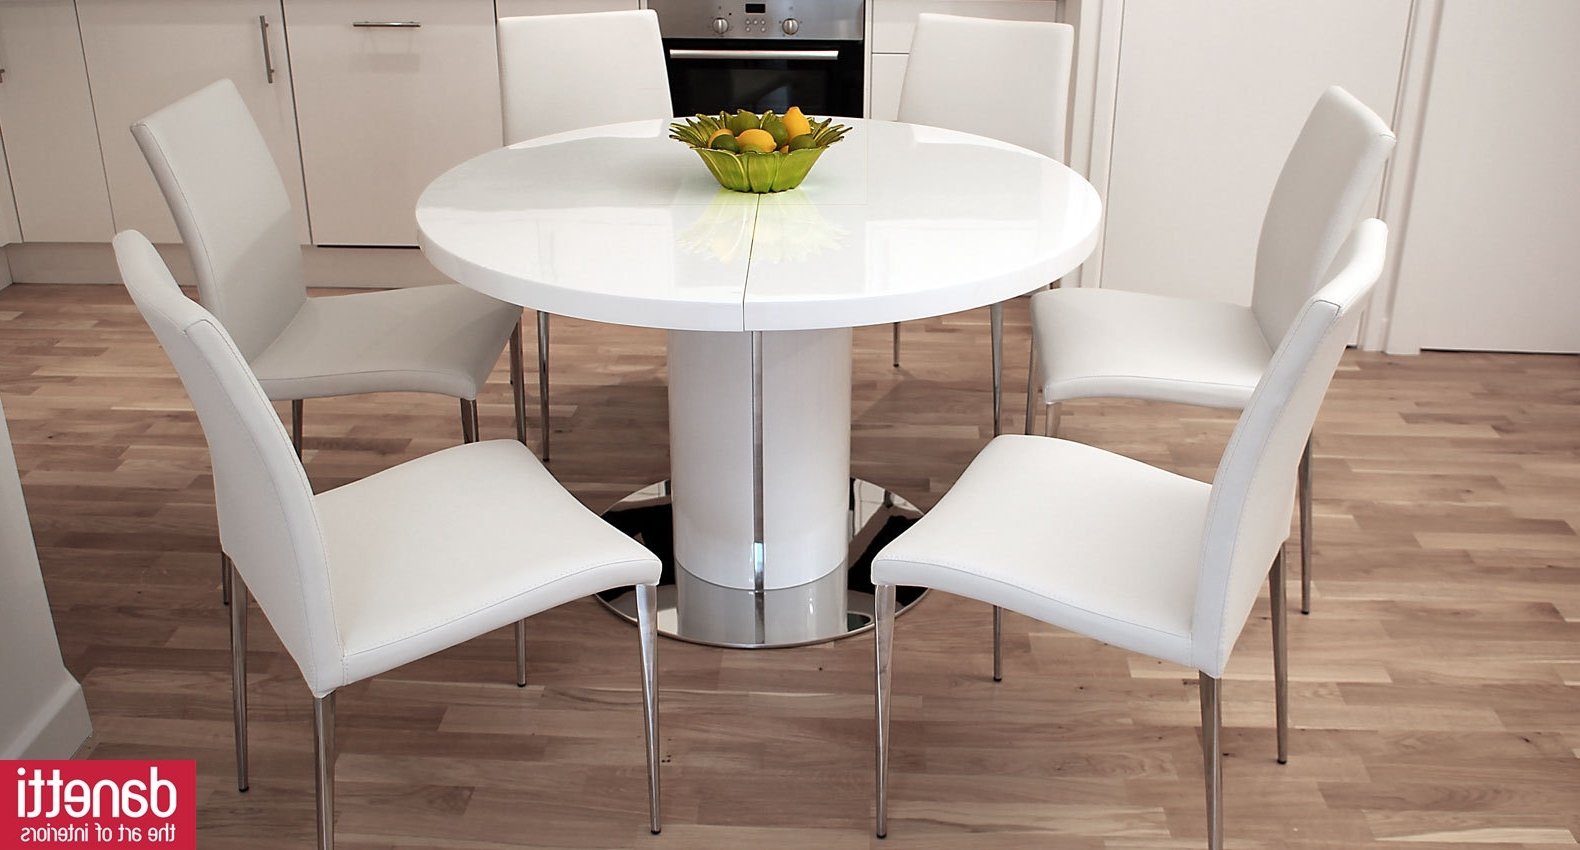 White Circle Dining Tables Regarding Well Known White Round Dining Table And Chairs White Circle Dining Table And Chairs (View 16 of 25)